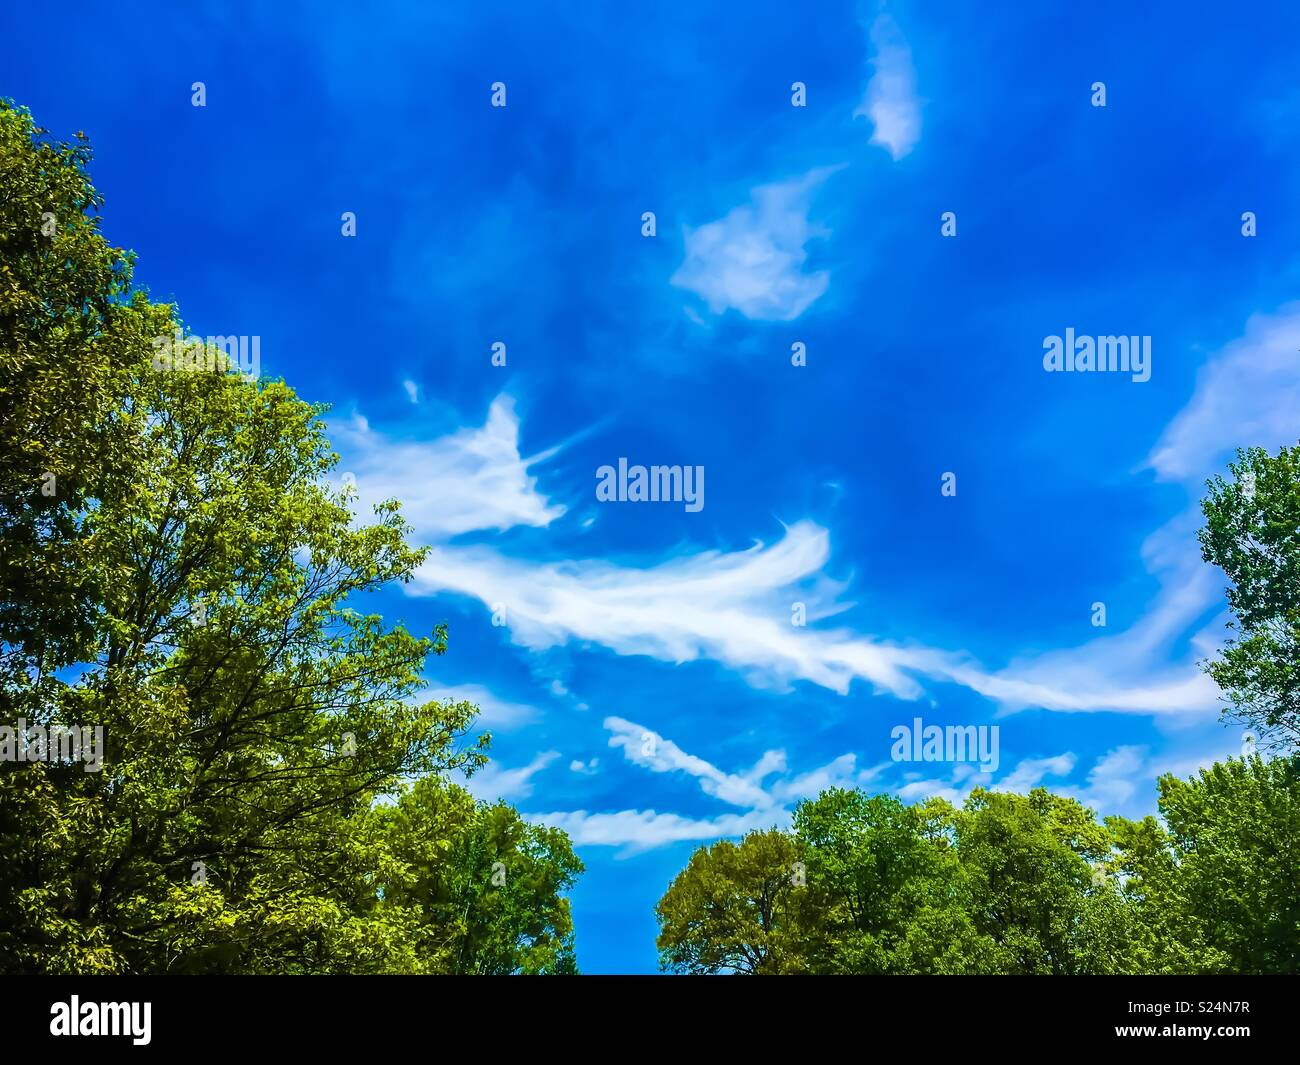 Cloud obsession - Stock Image